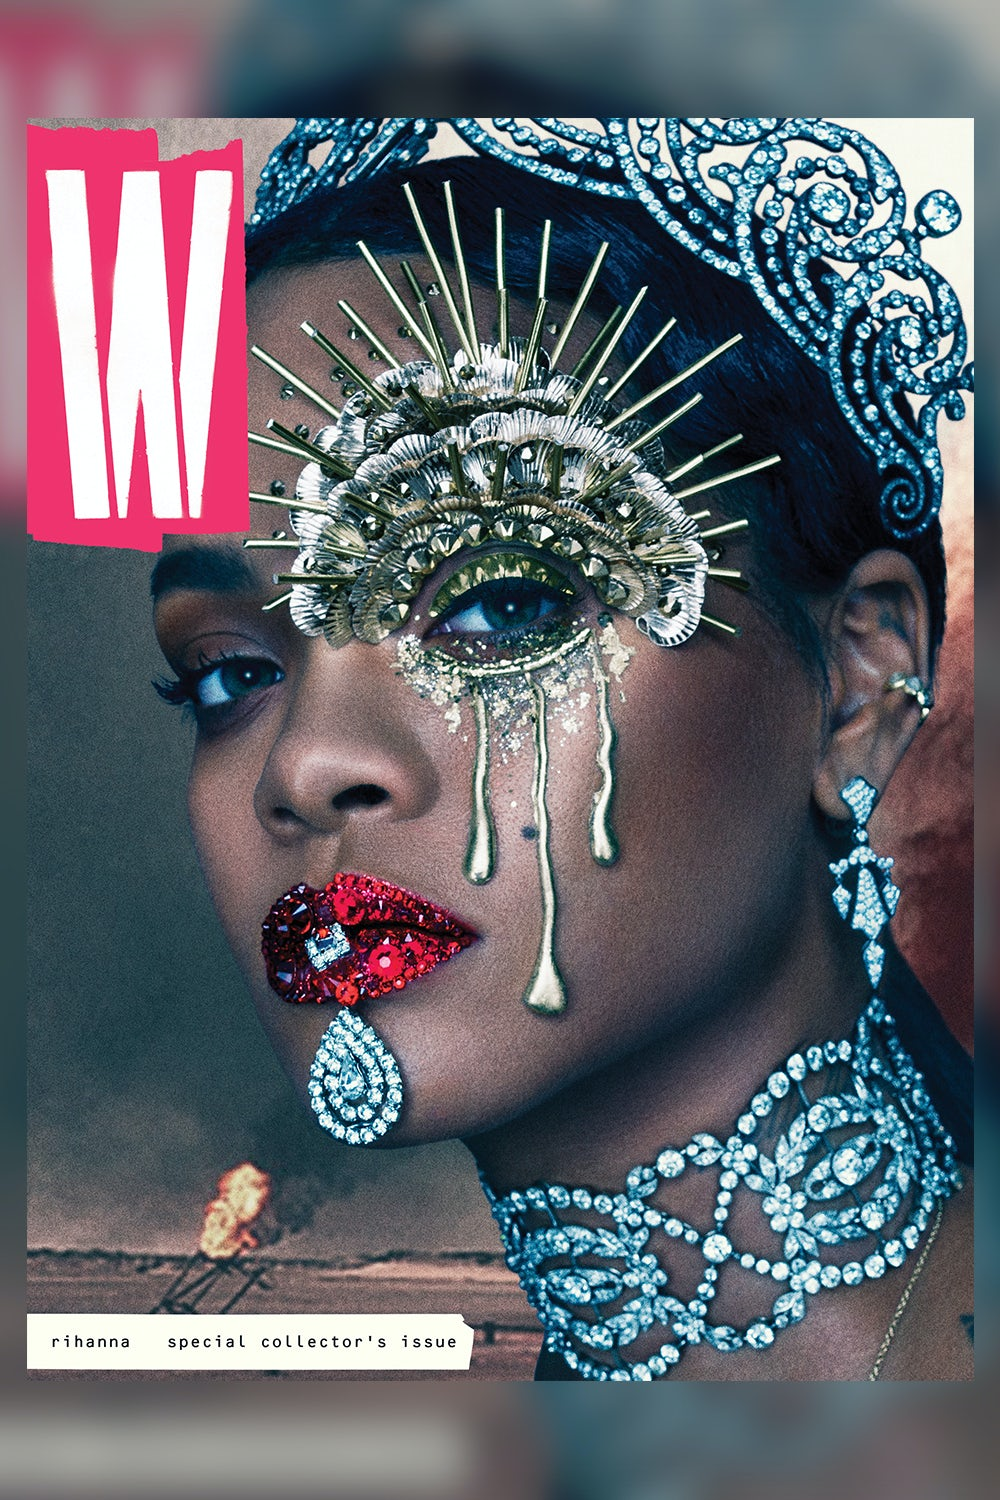 Rihanna as a queen during wartime on the cover of W magazine's September issue, art directed by Terry Jones | Photo: Steven Klein/Courtesy